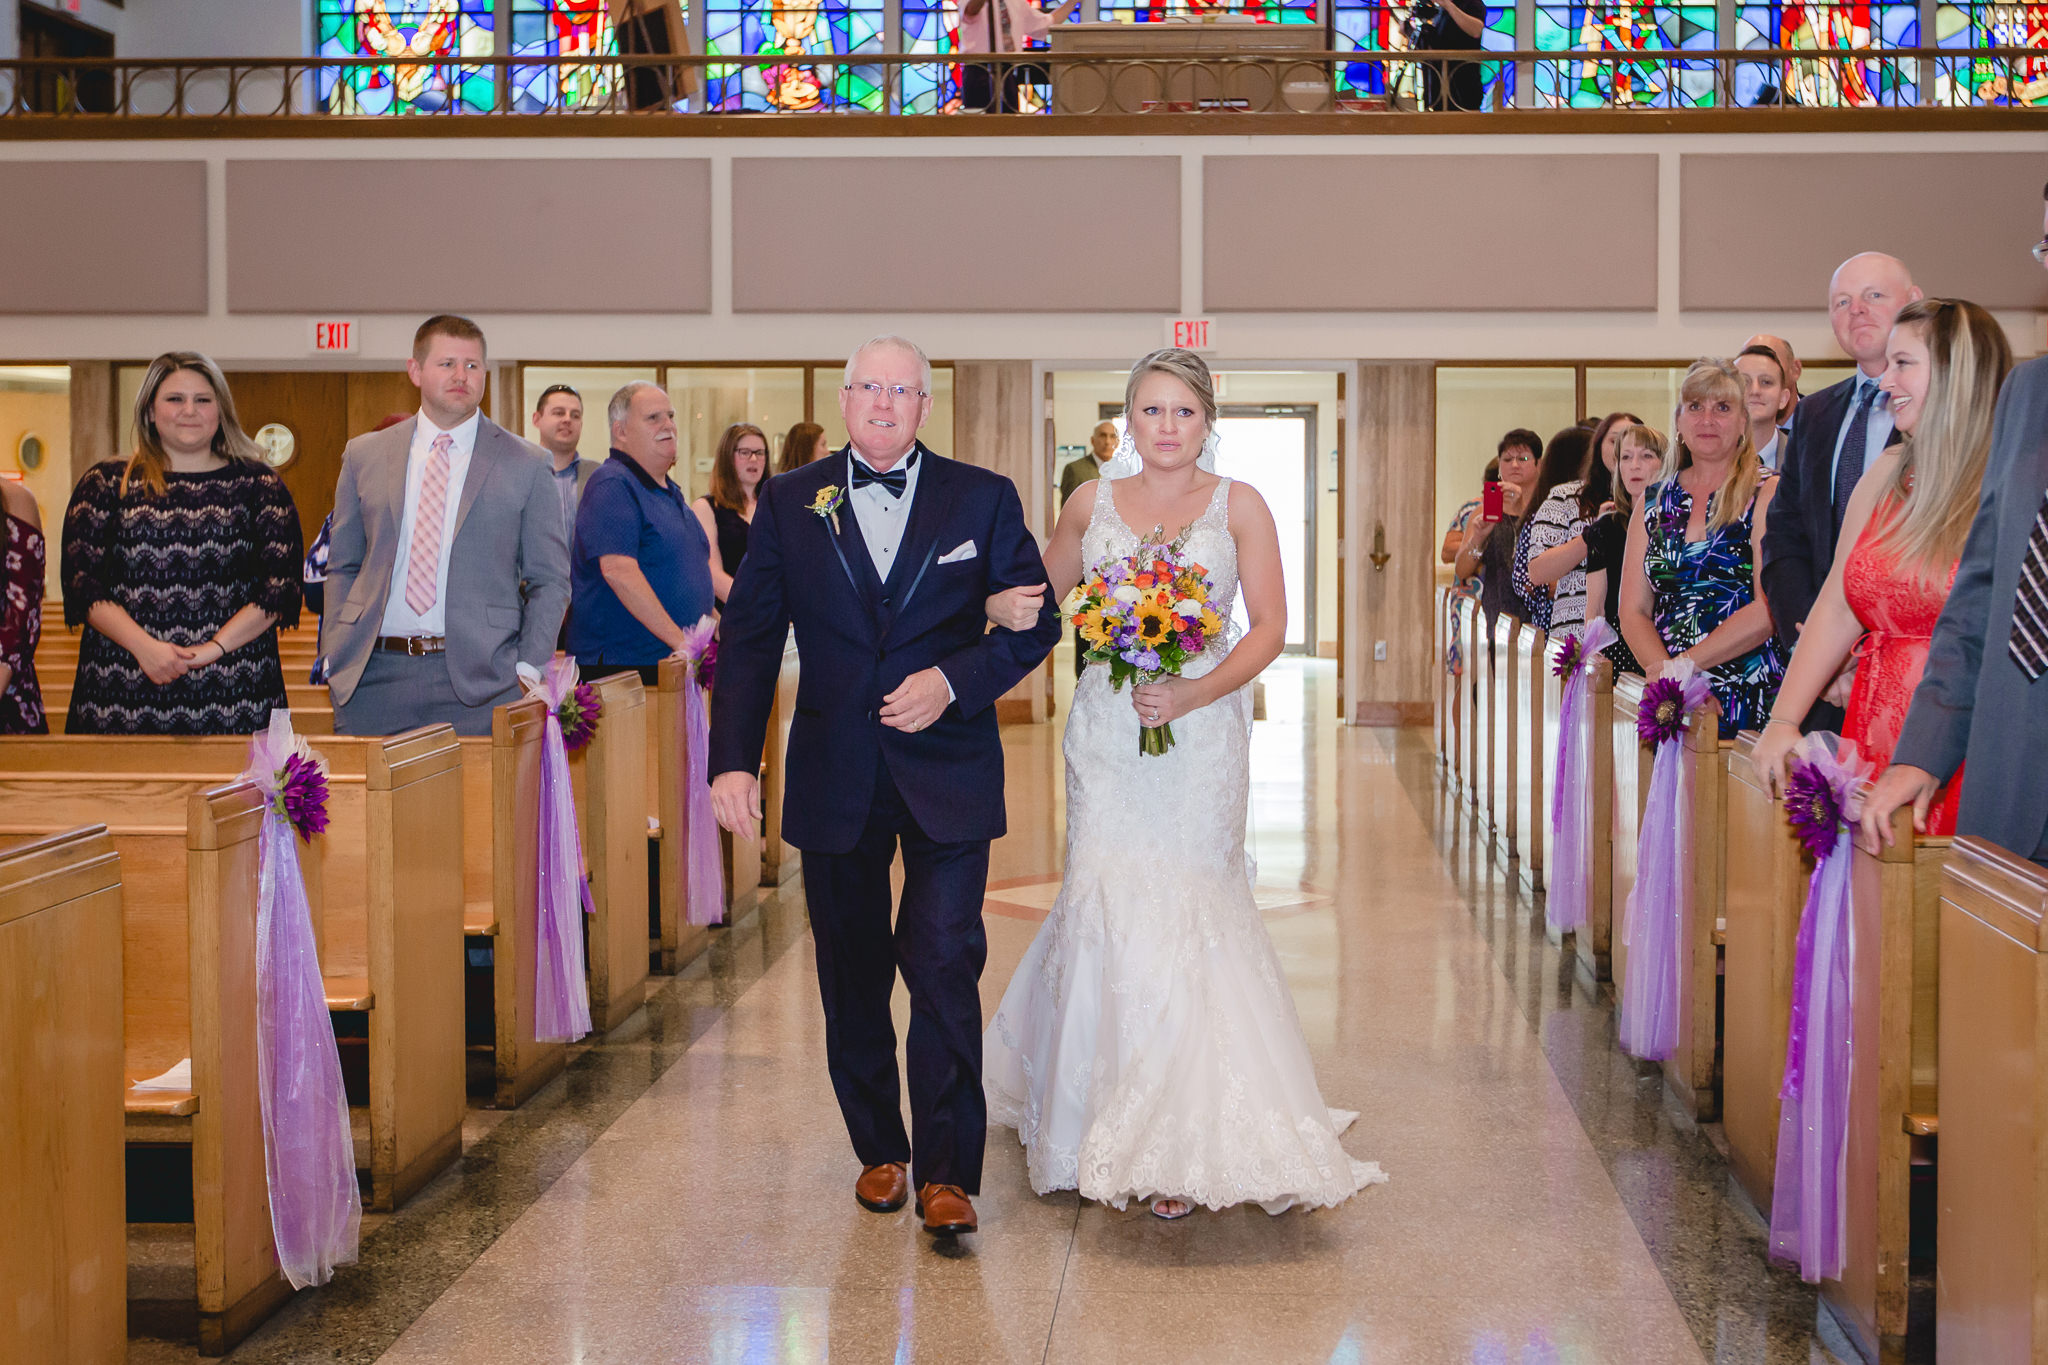 Father of the bride walks his daughter down the aisle at St. Titus Church